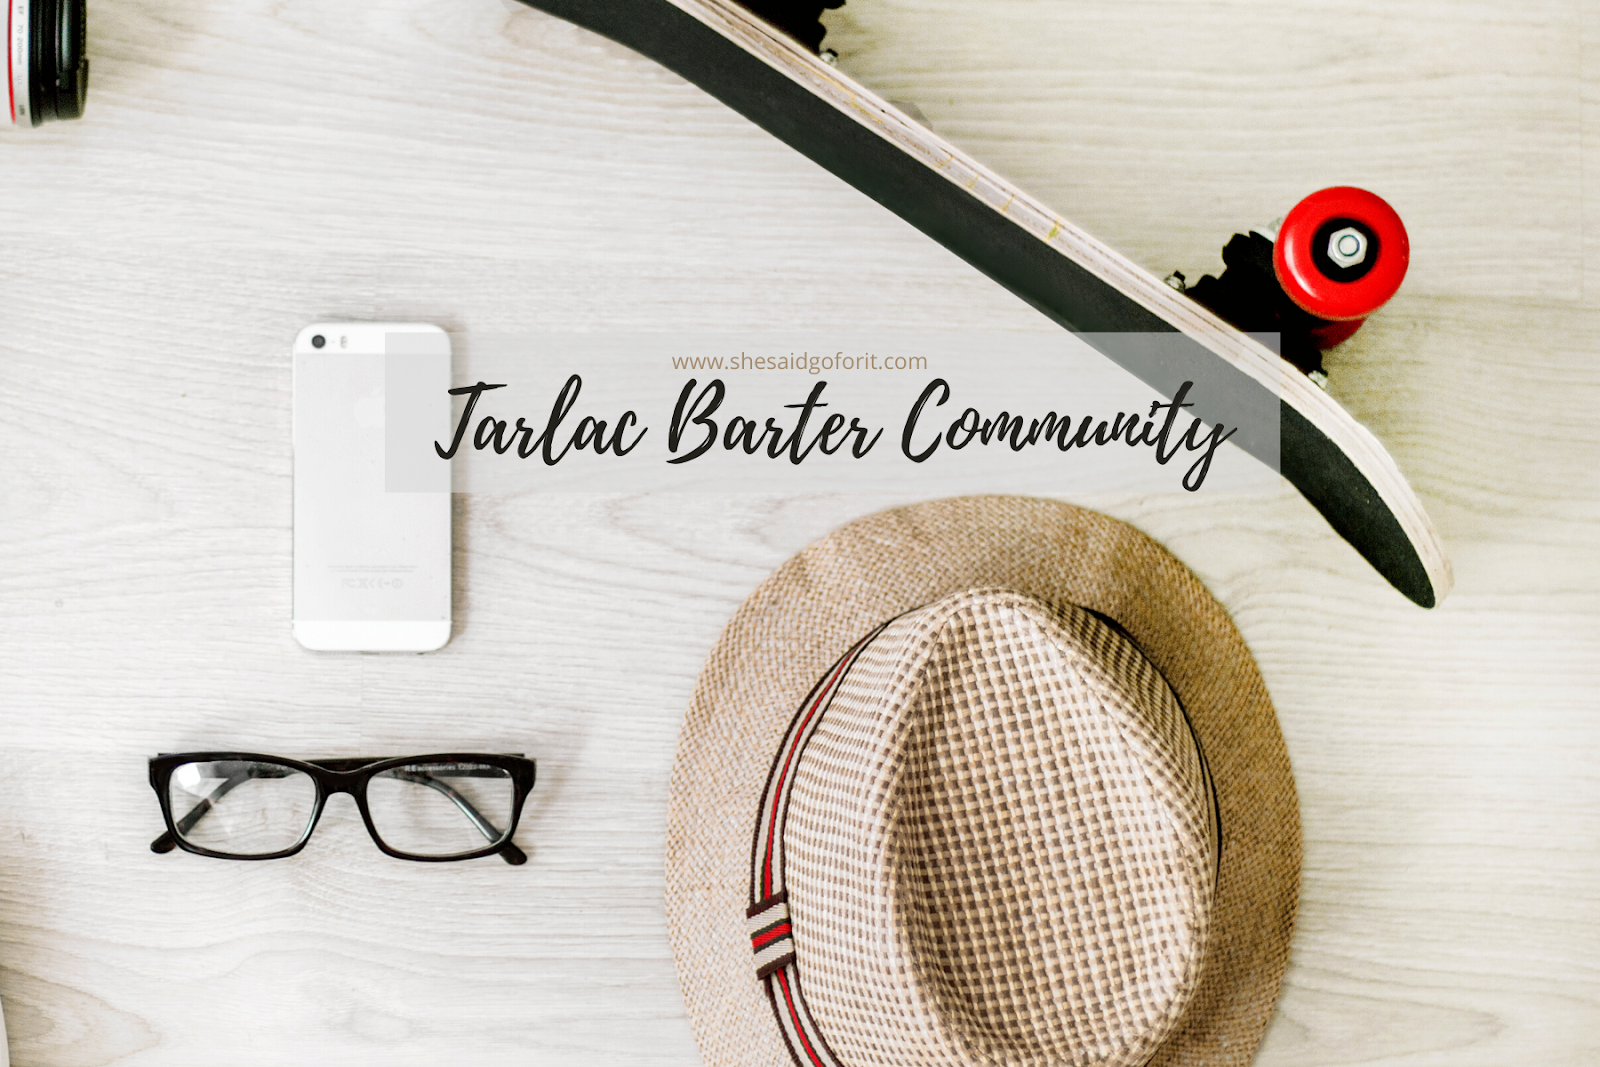 Everything you need to know about Tarlac Barter Community and how to barter by Life blogger Teresa Gueco